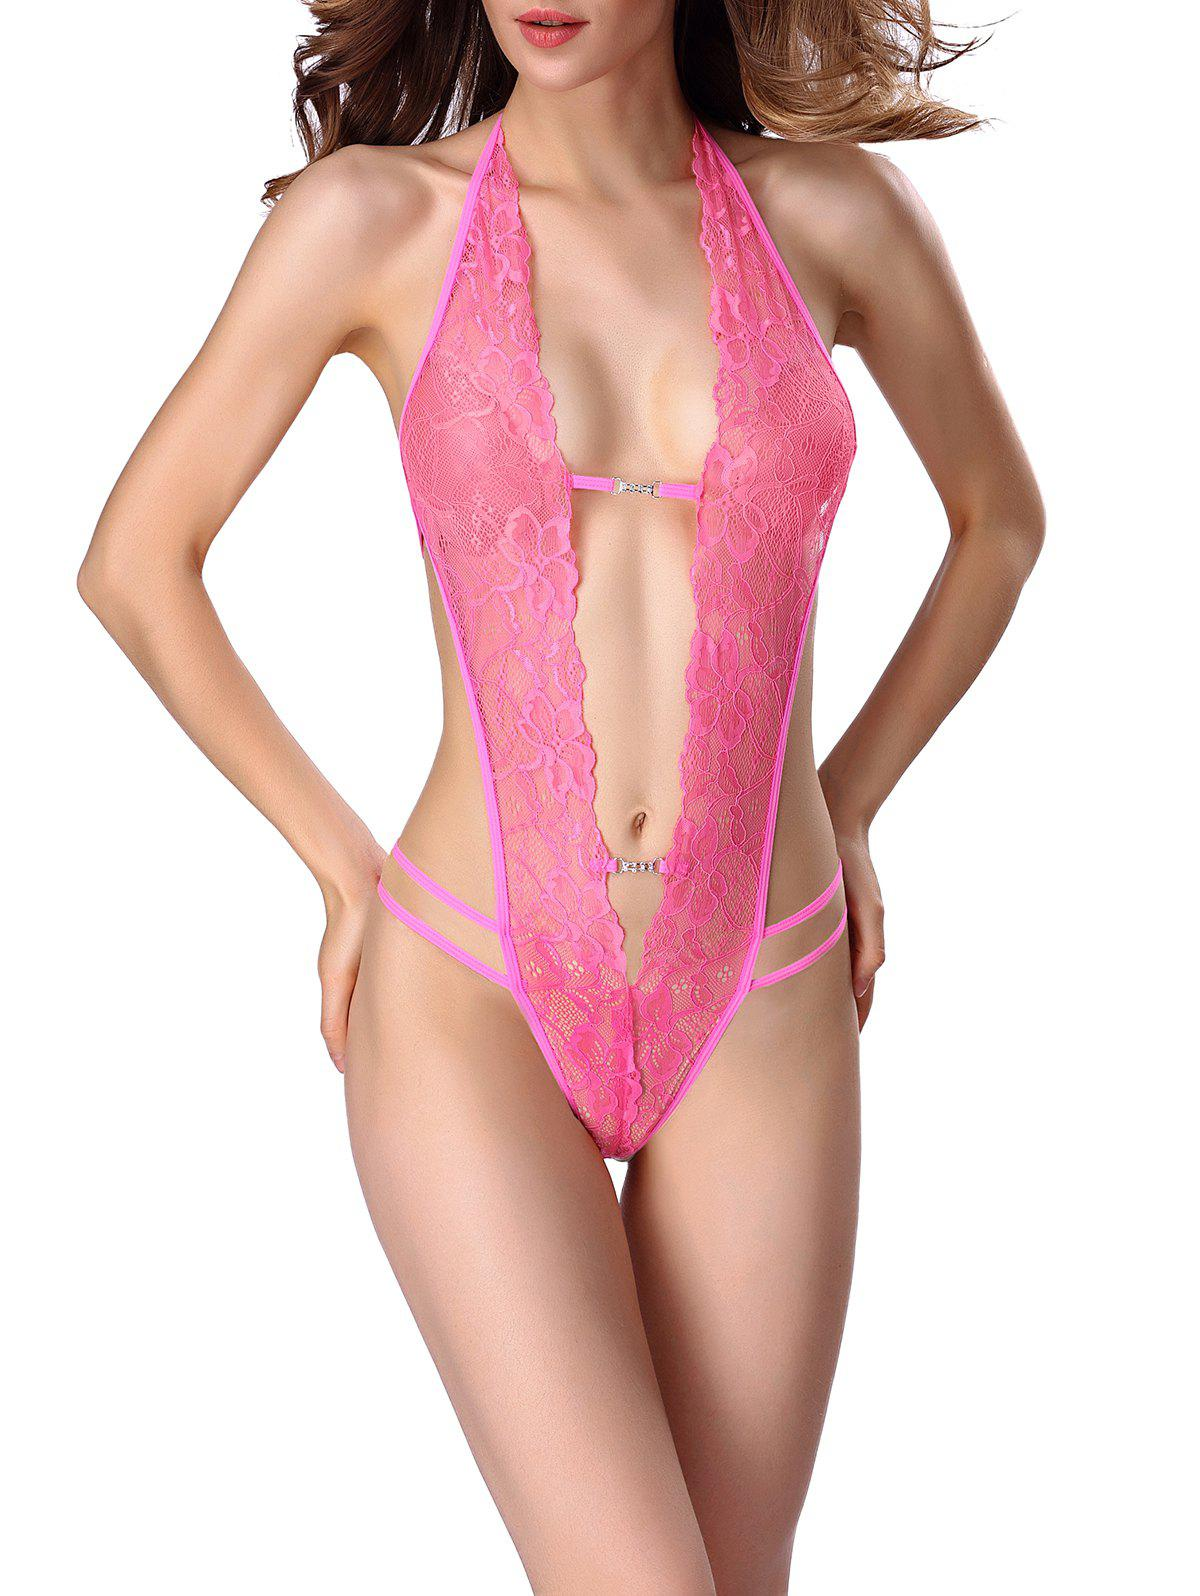 Hollow Out Lace One Piece Babydoll Lingerie - Rouge Rose 2XL